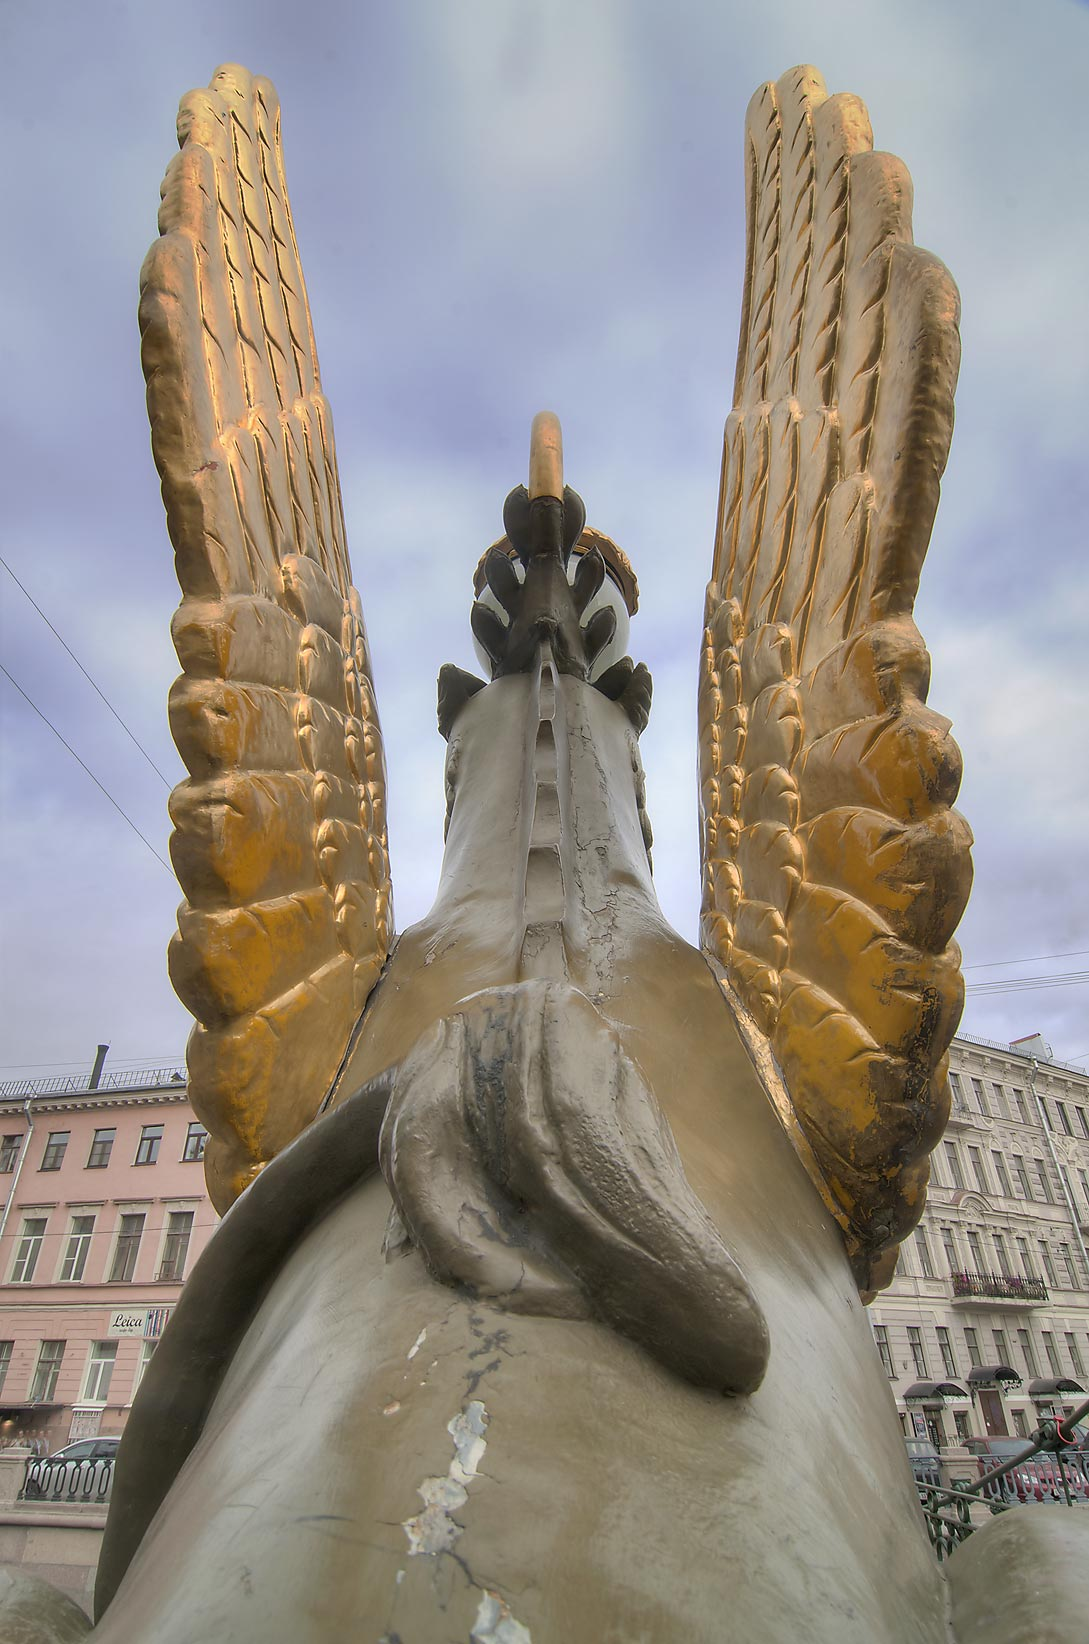 Gryphon's wings on Bankovsky Bridge of Griboedov Canal. St.Petersburg, Russia